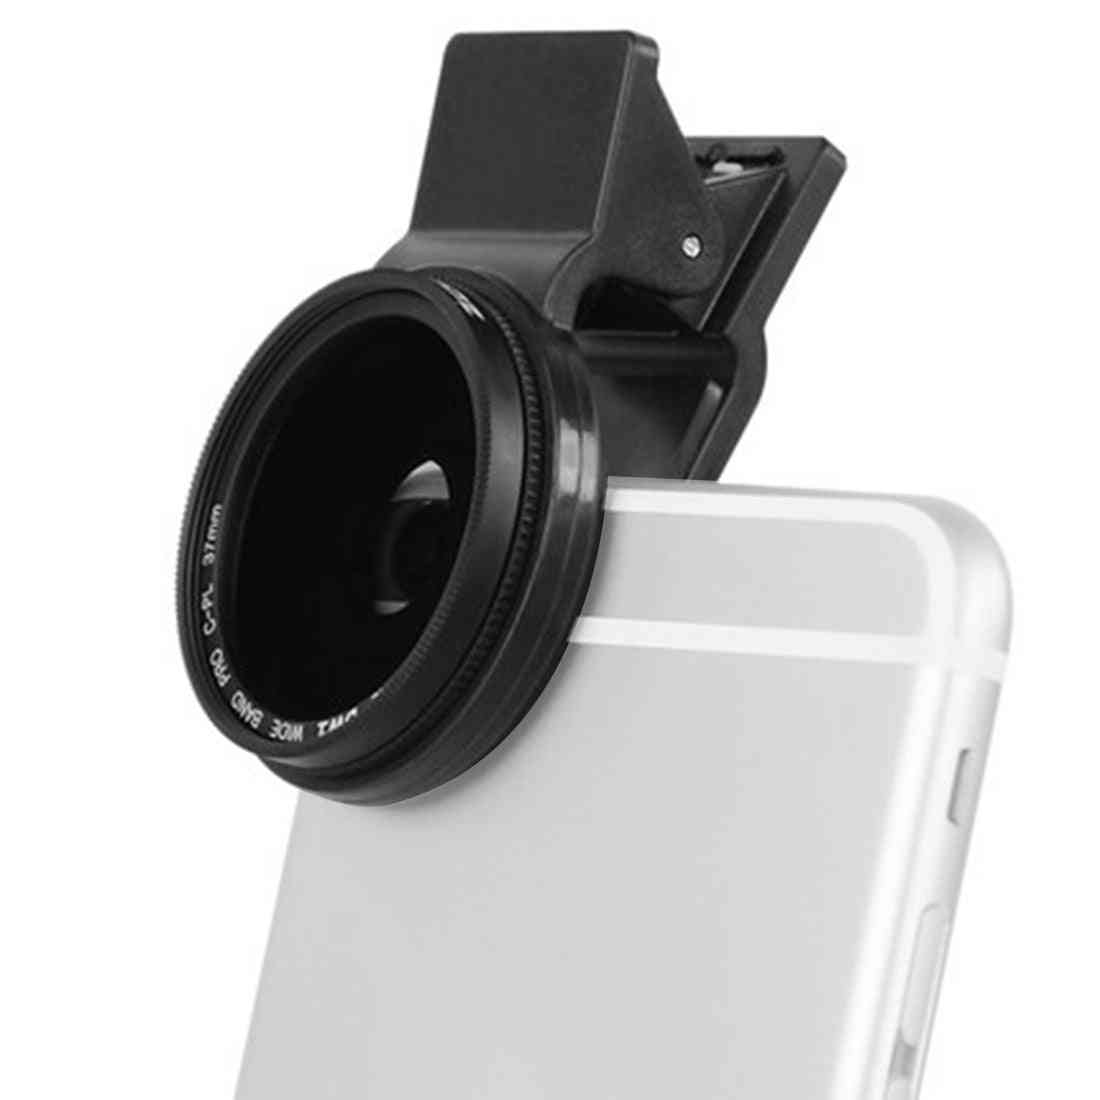 Professional Phone-camera Circular-polarizer Cpl-lens For Iphone 7 6s Plus Samsung Galaxy Huawei Htc Windows Android